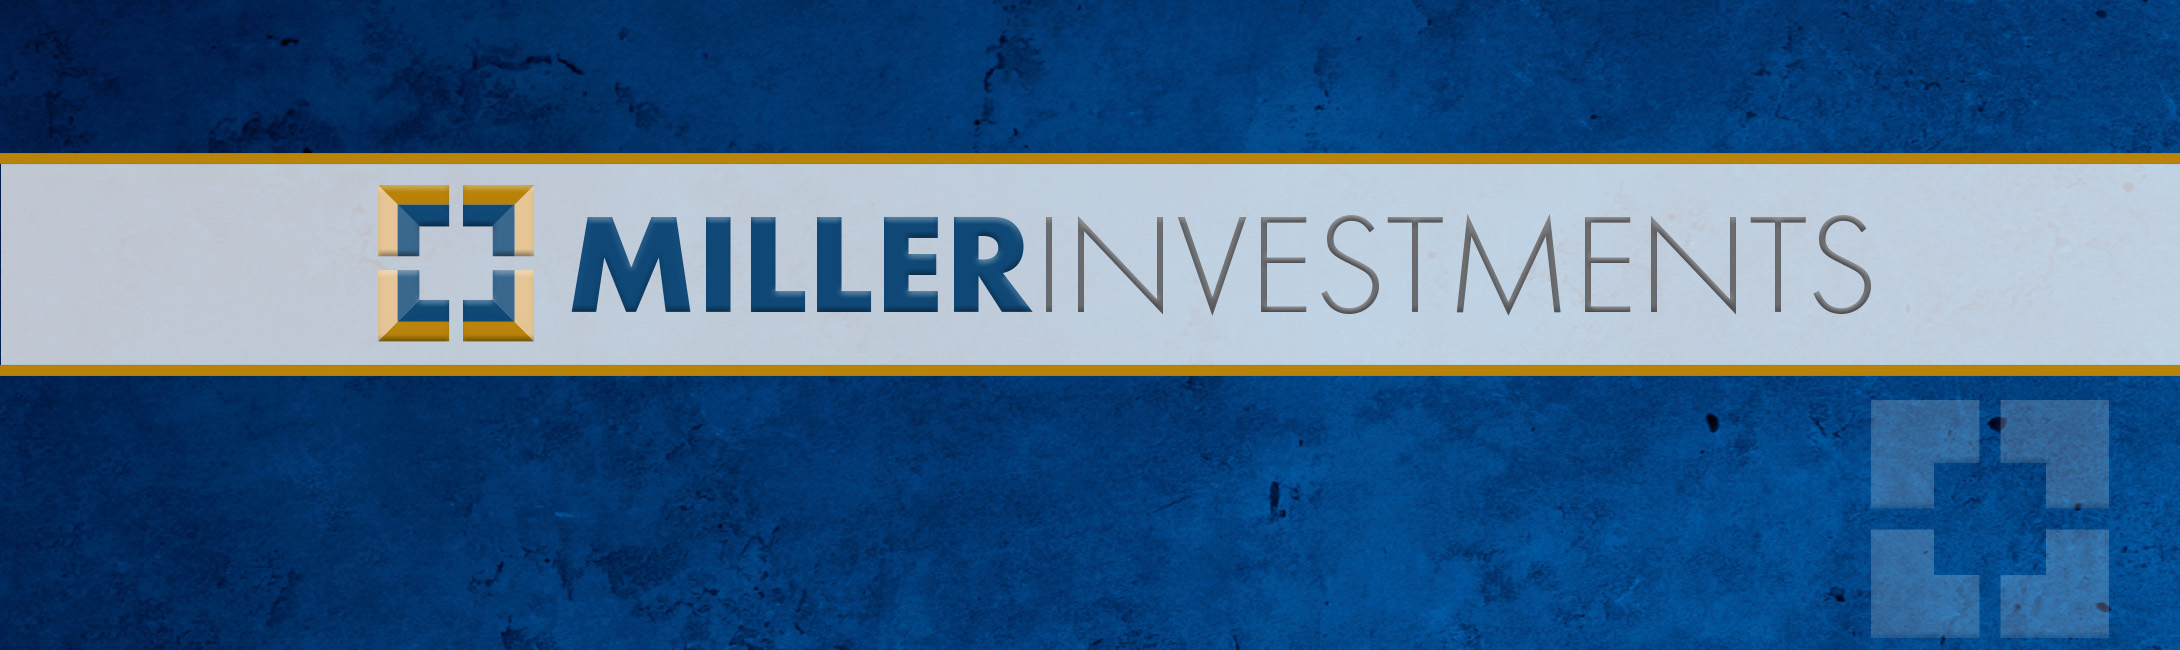 Miller investments front image